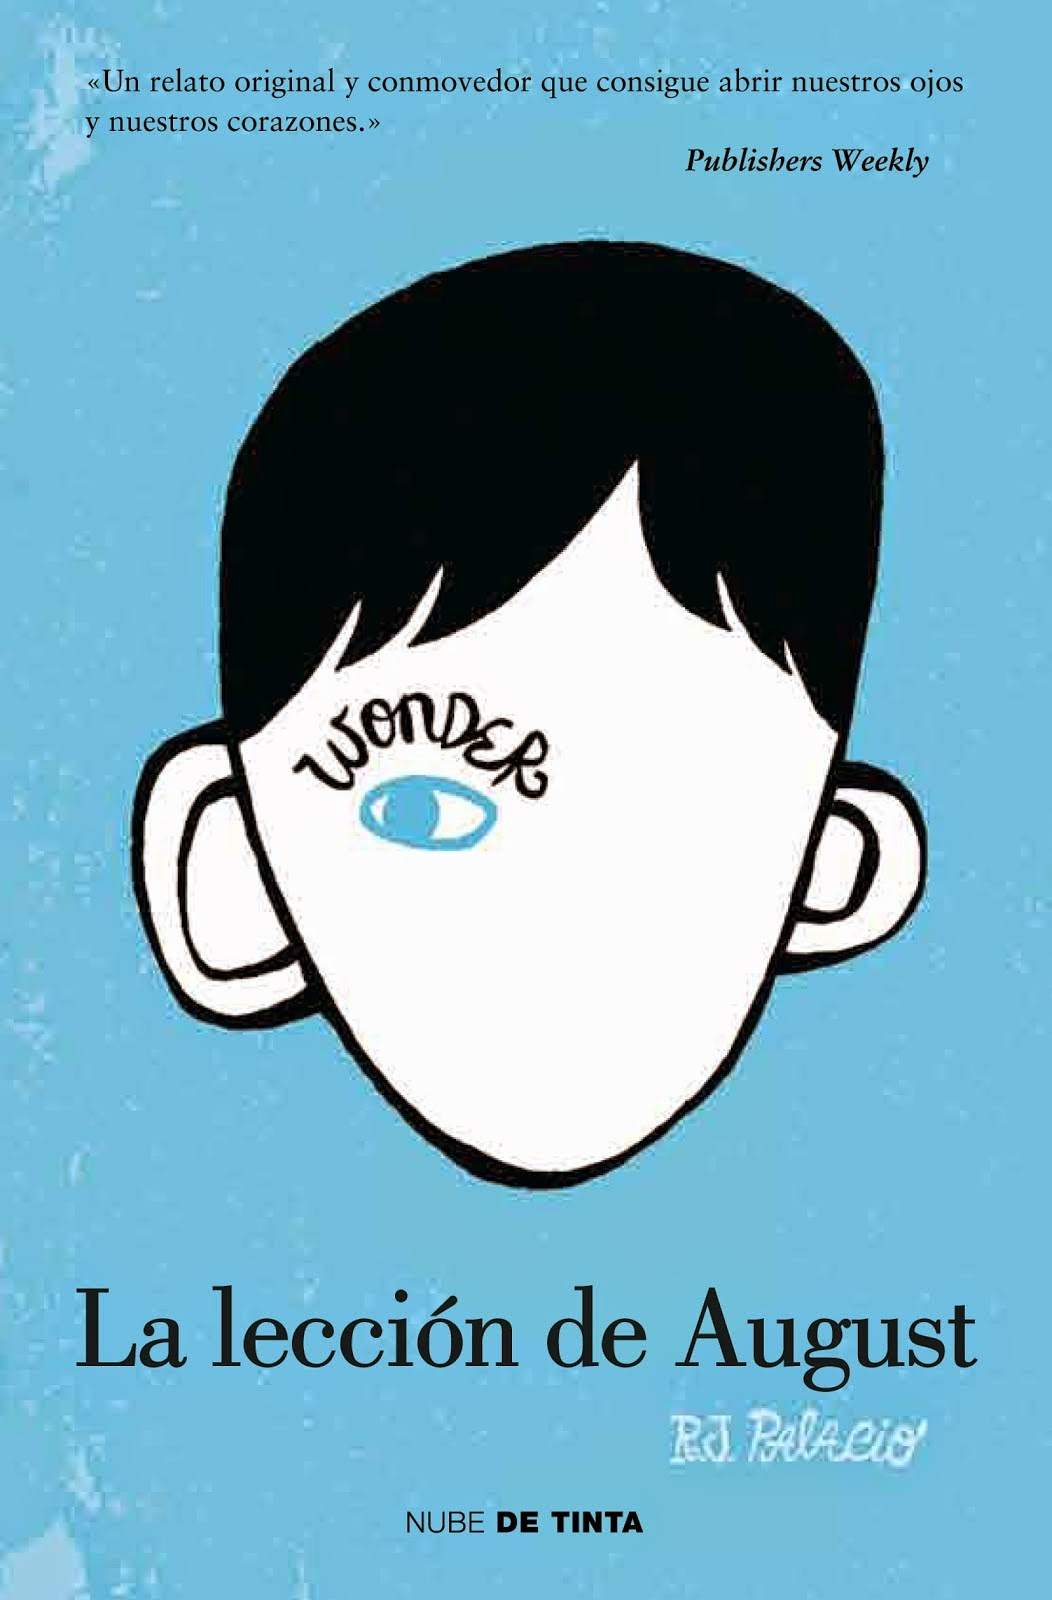 Wonder - R.J. Palacio